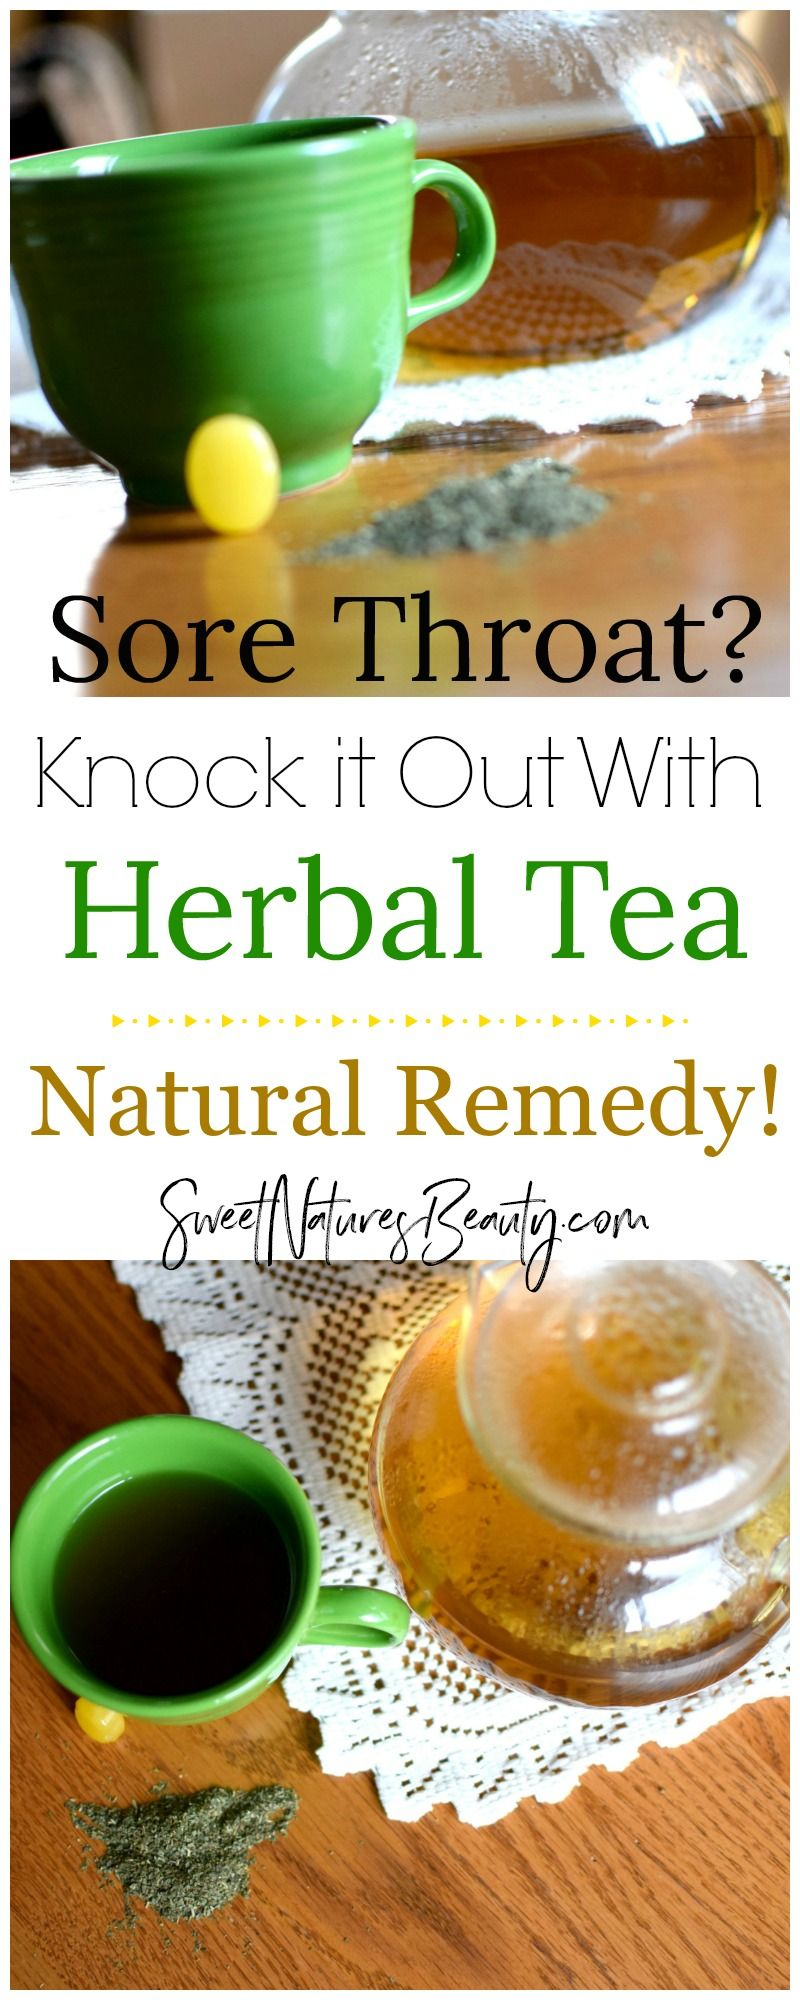 Try this At Home Remedy for a Sore Throat for an amazing natural remedy  that works! Click through to find the herbal remedy recipe.